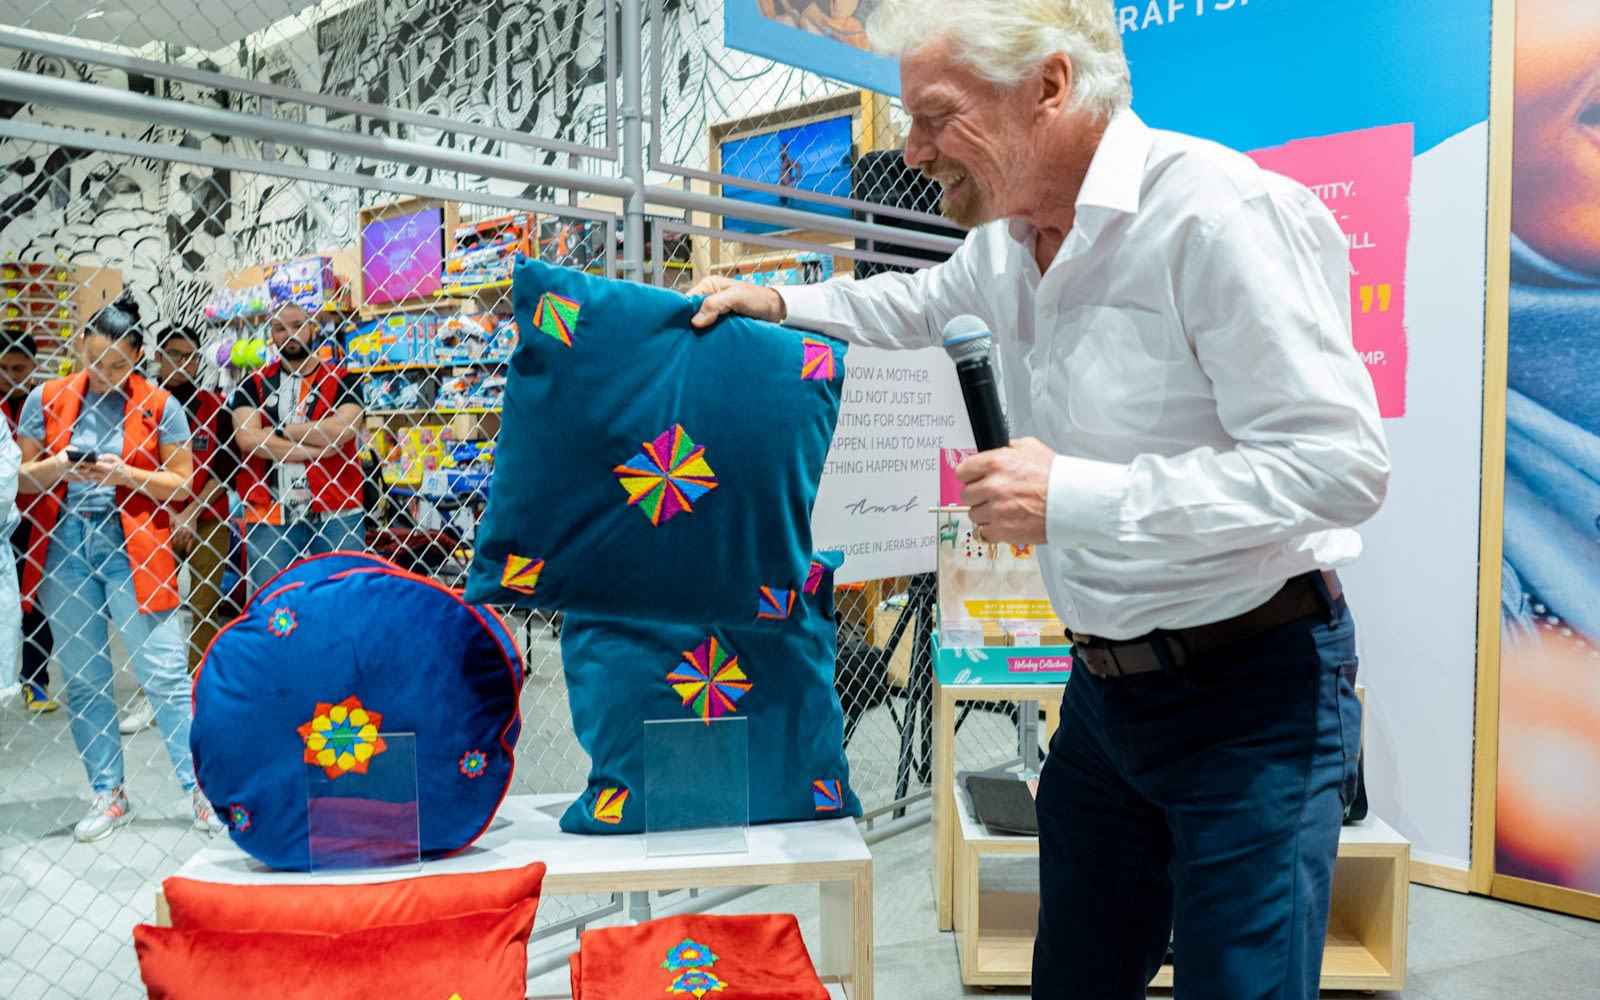 Richard Branson at Virgin Megastores holding a pillow from Made51